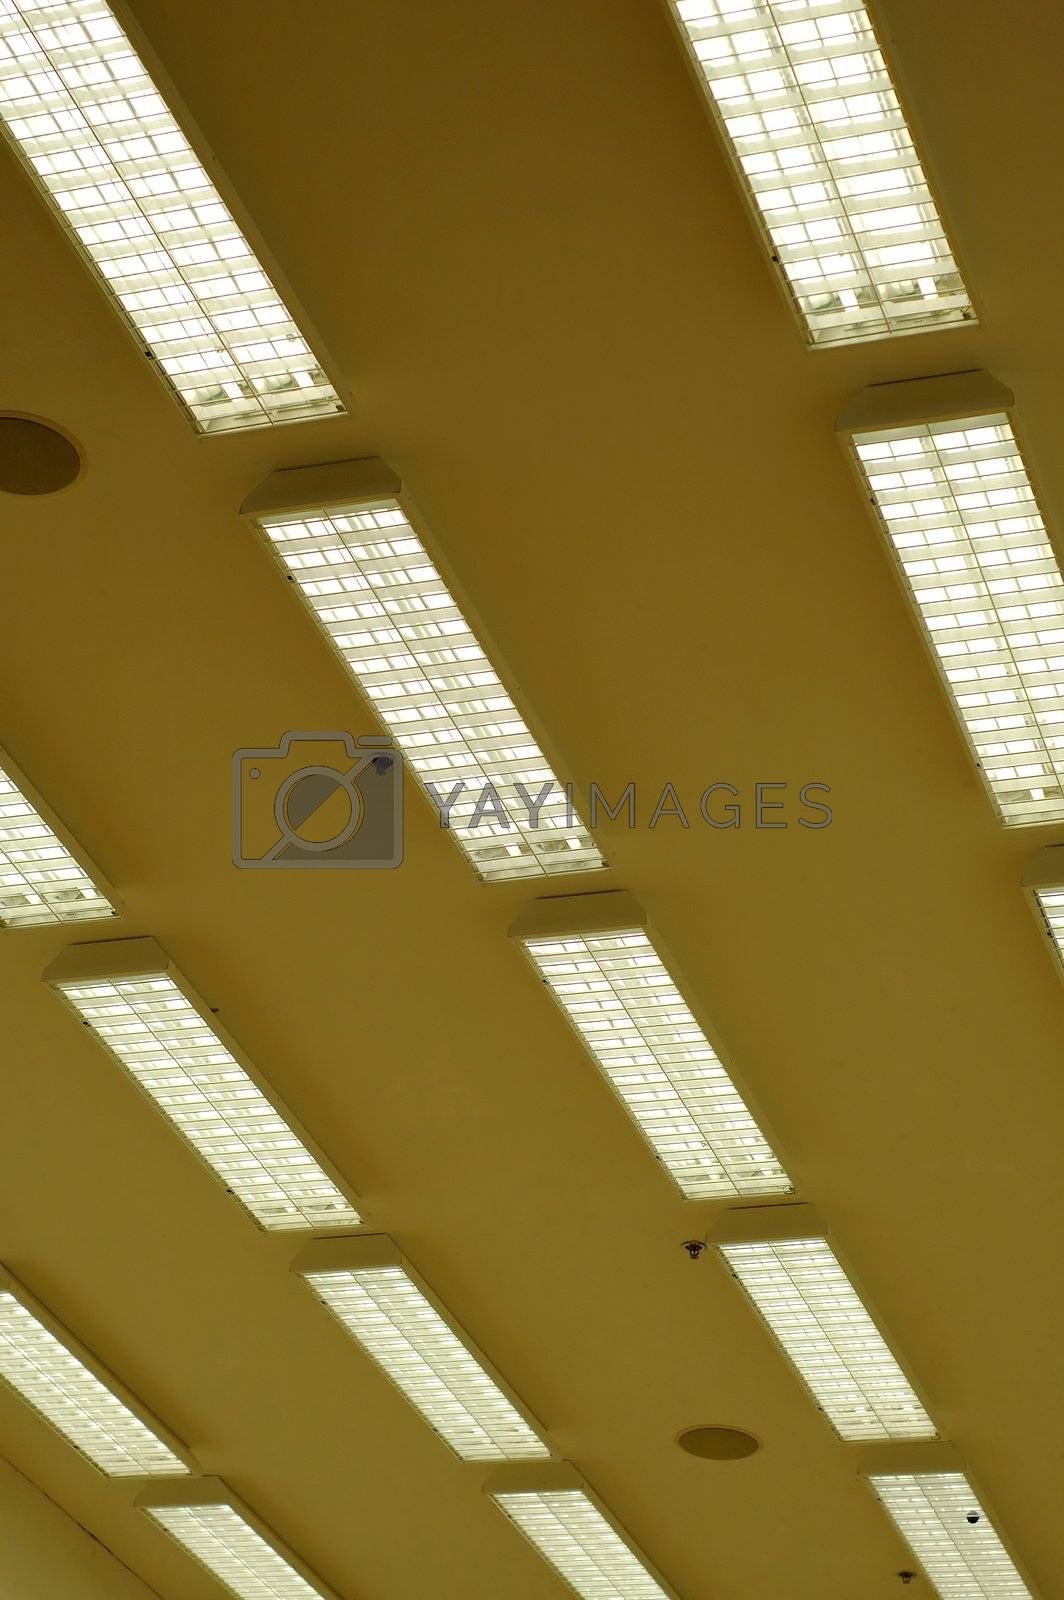 Row of fluorescent lamps by tito